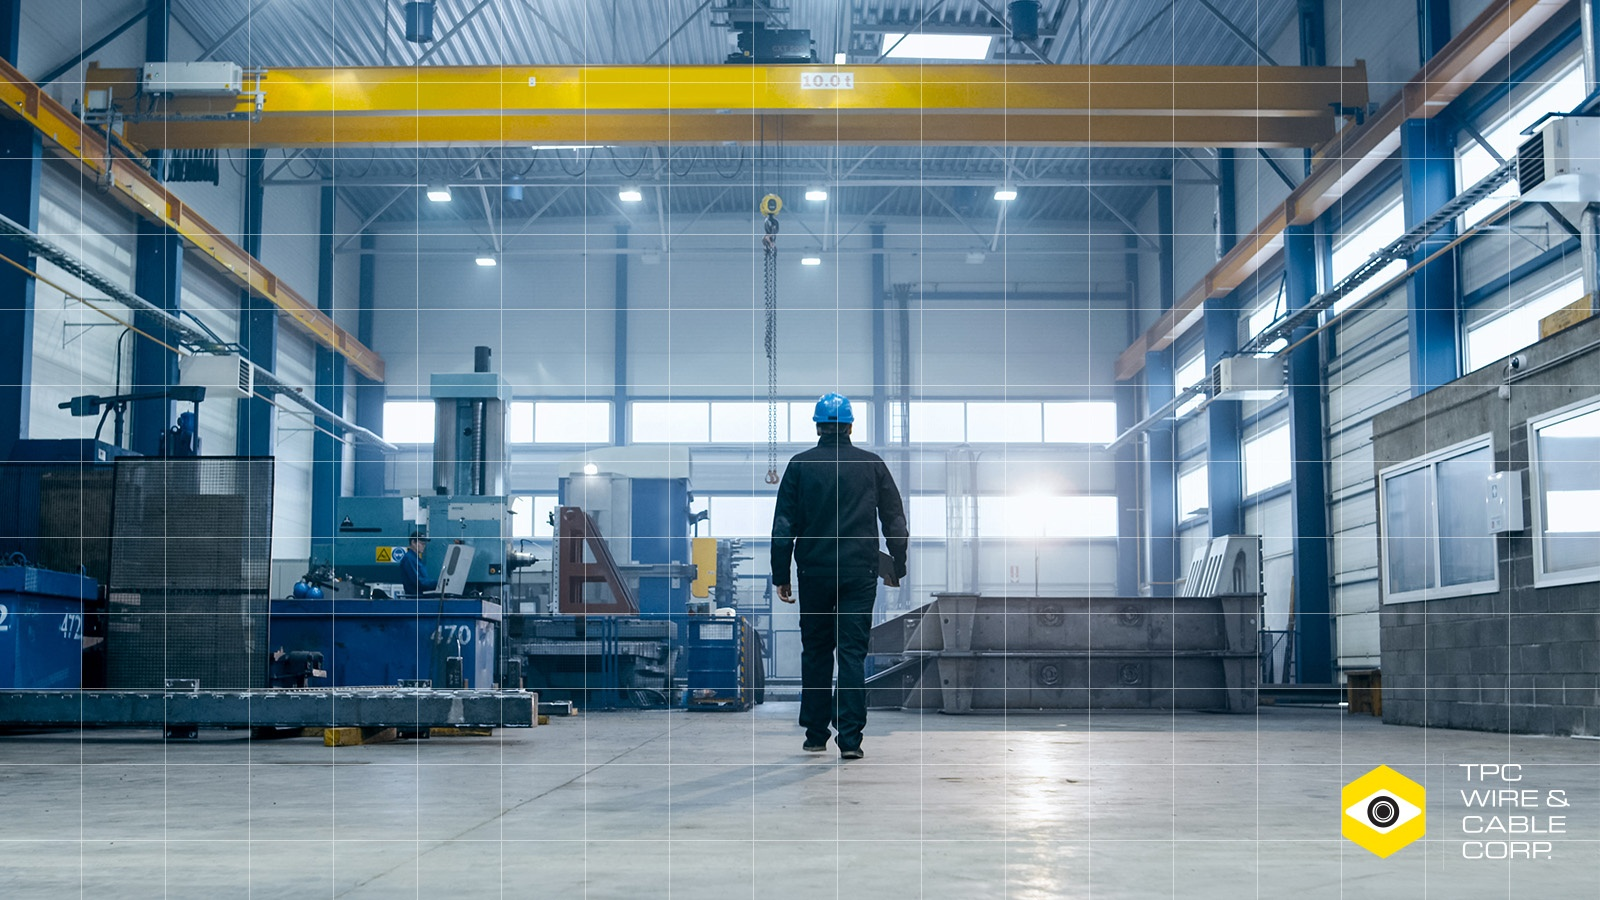 3 Maintenance Management Practices To Reduce Downtime